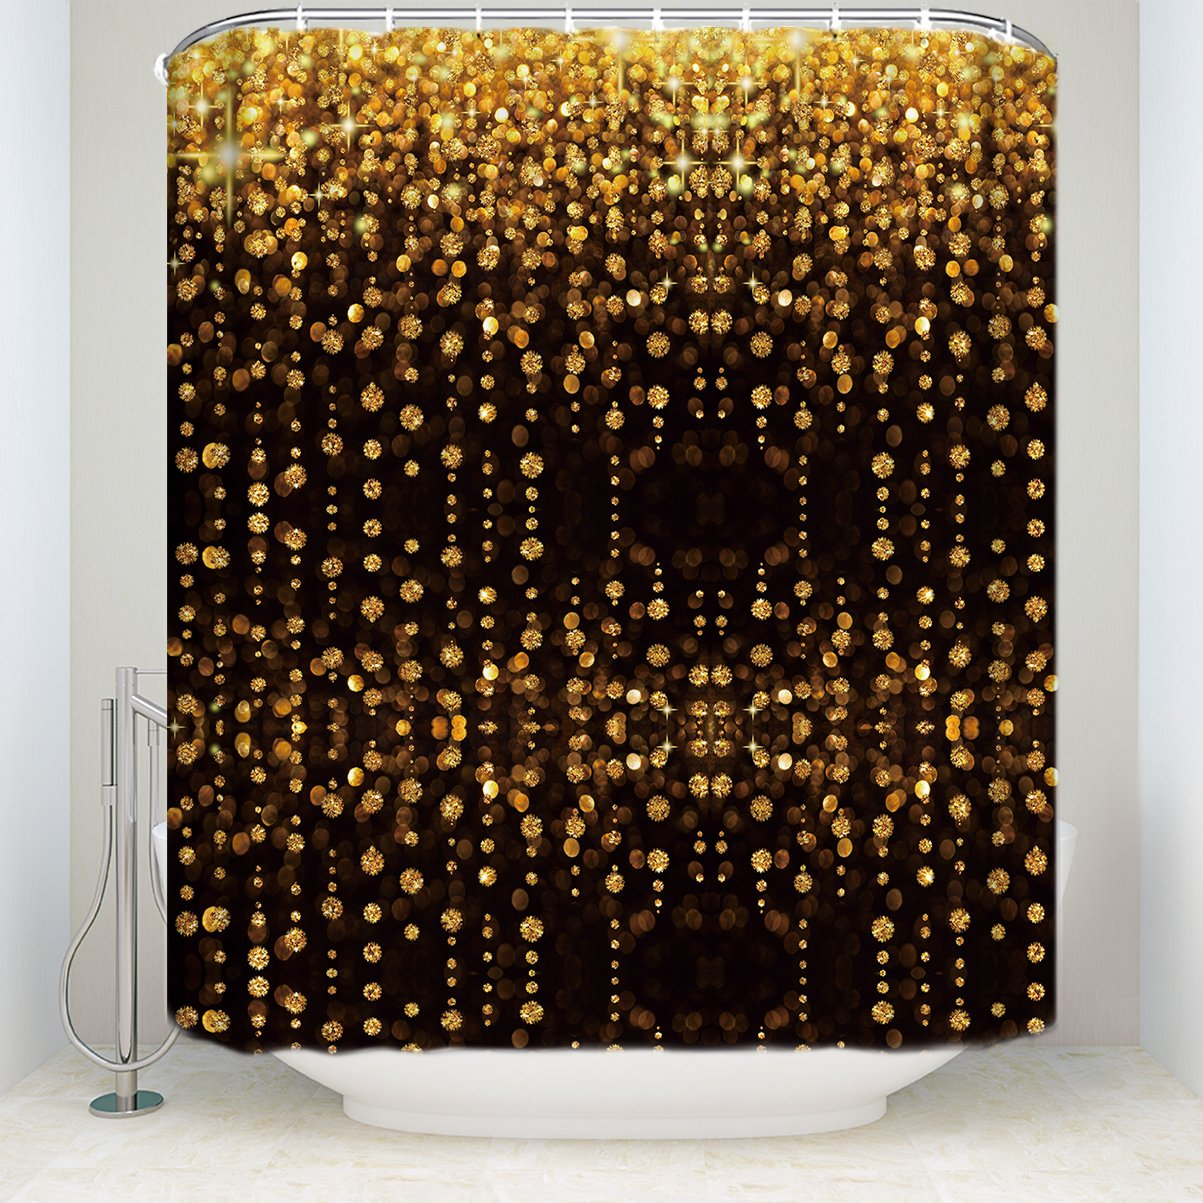 Home Luxury Bling Shower Curtains Warm